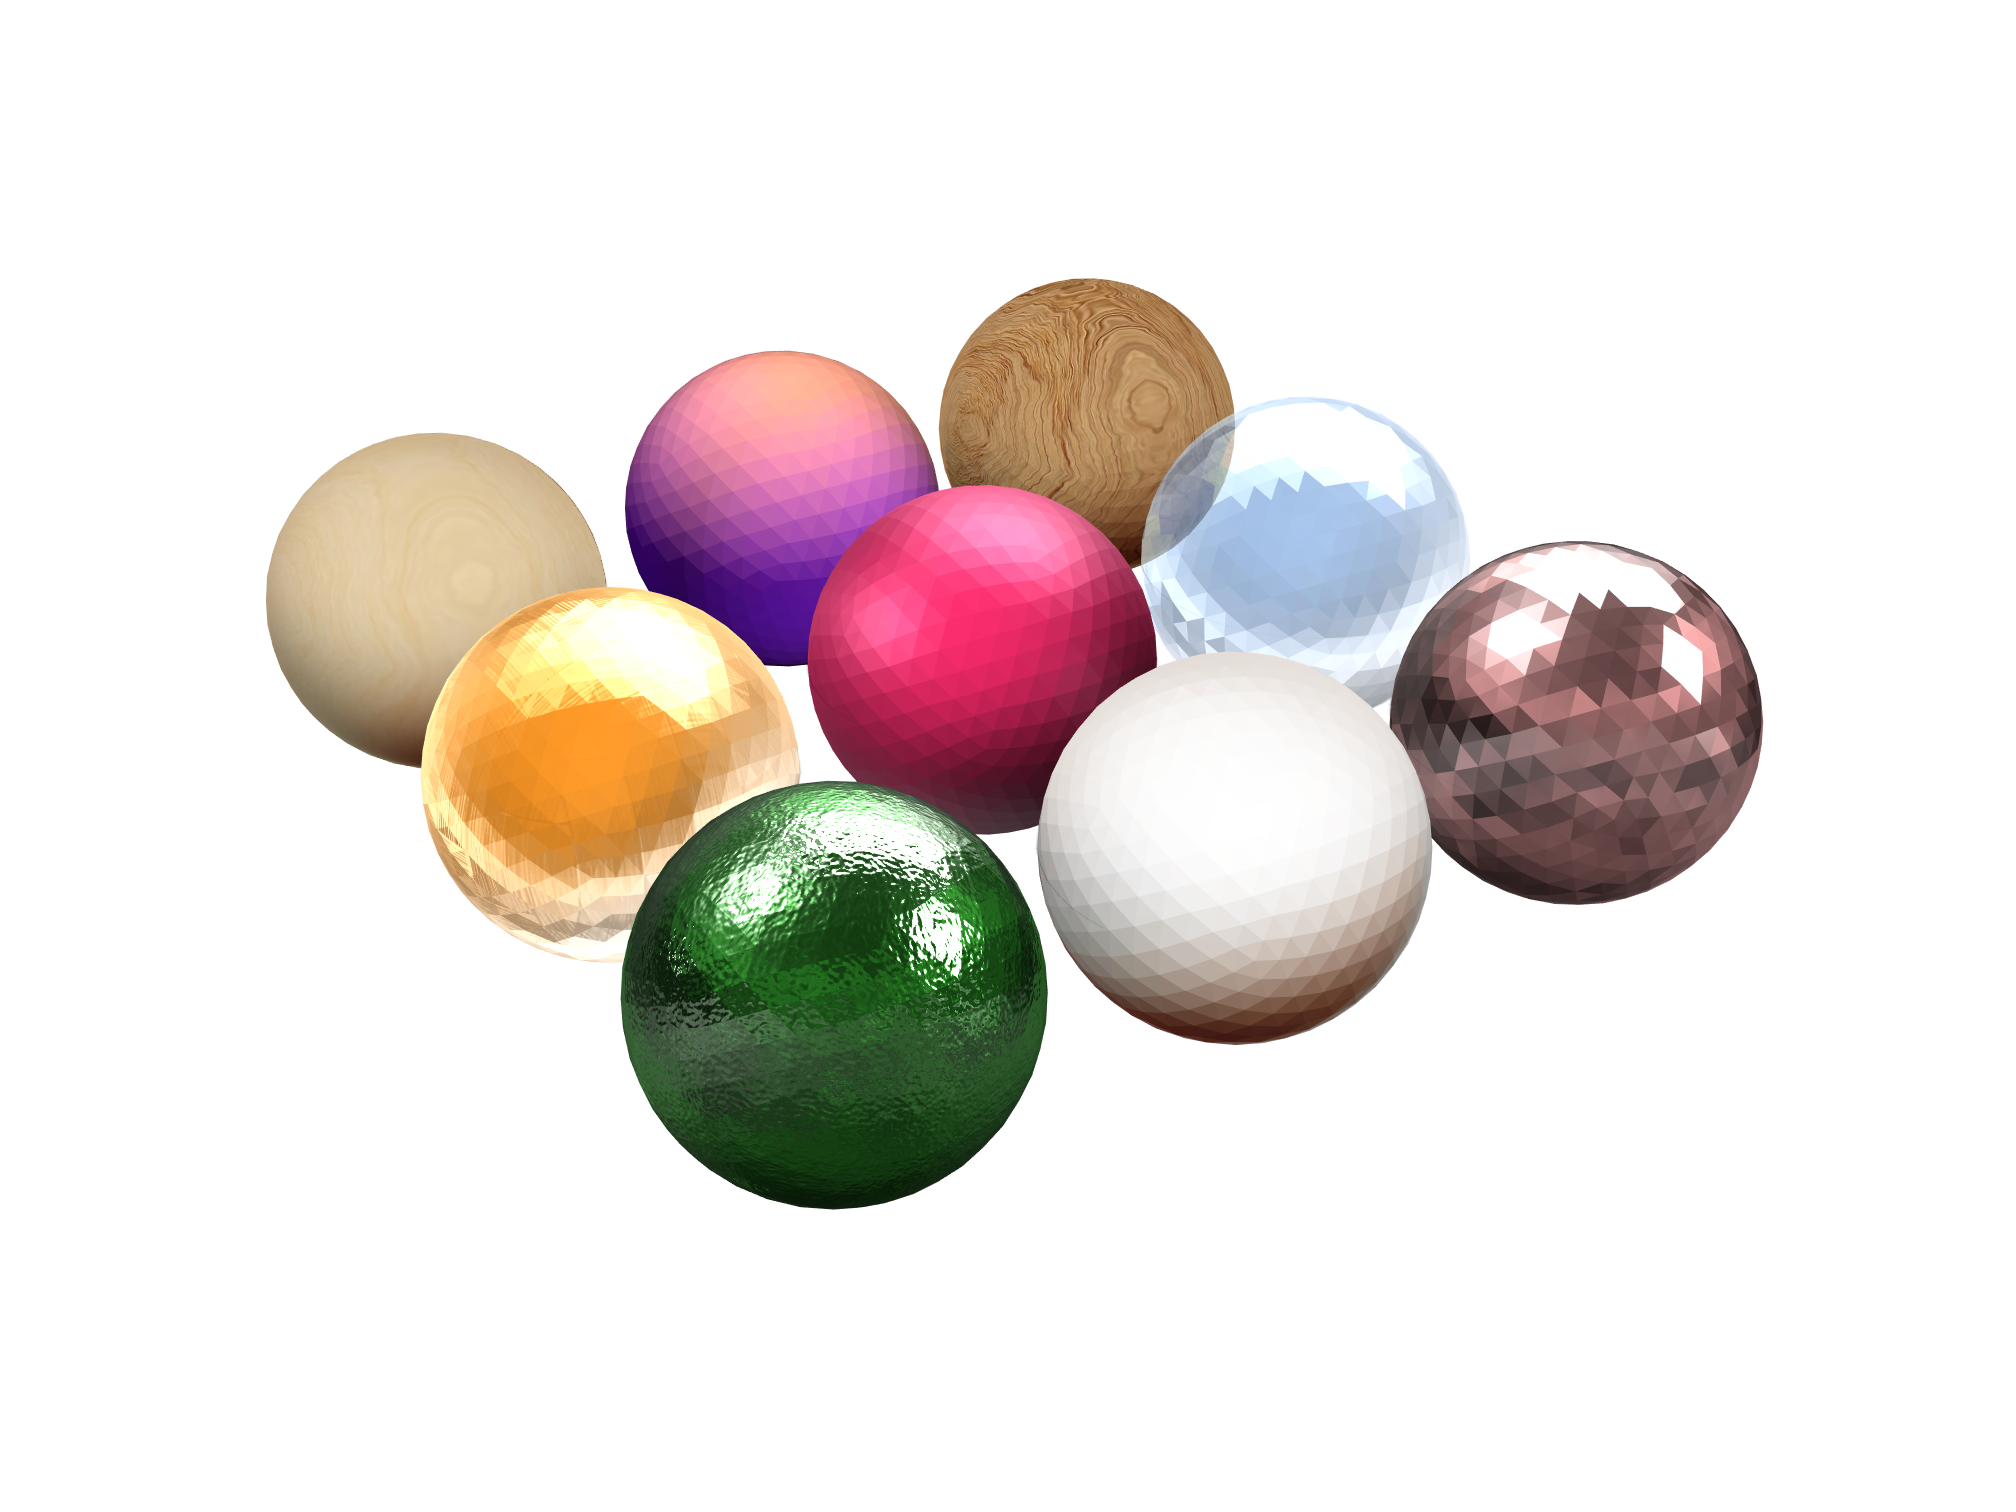 Sphere materials - 3D design by Ngan Vu Mar 3, 2018